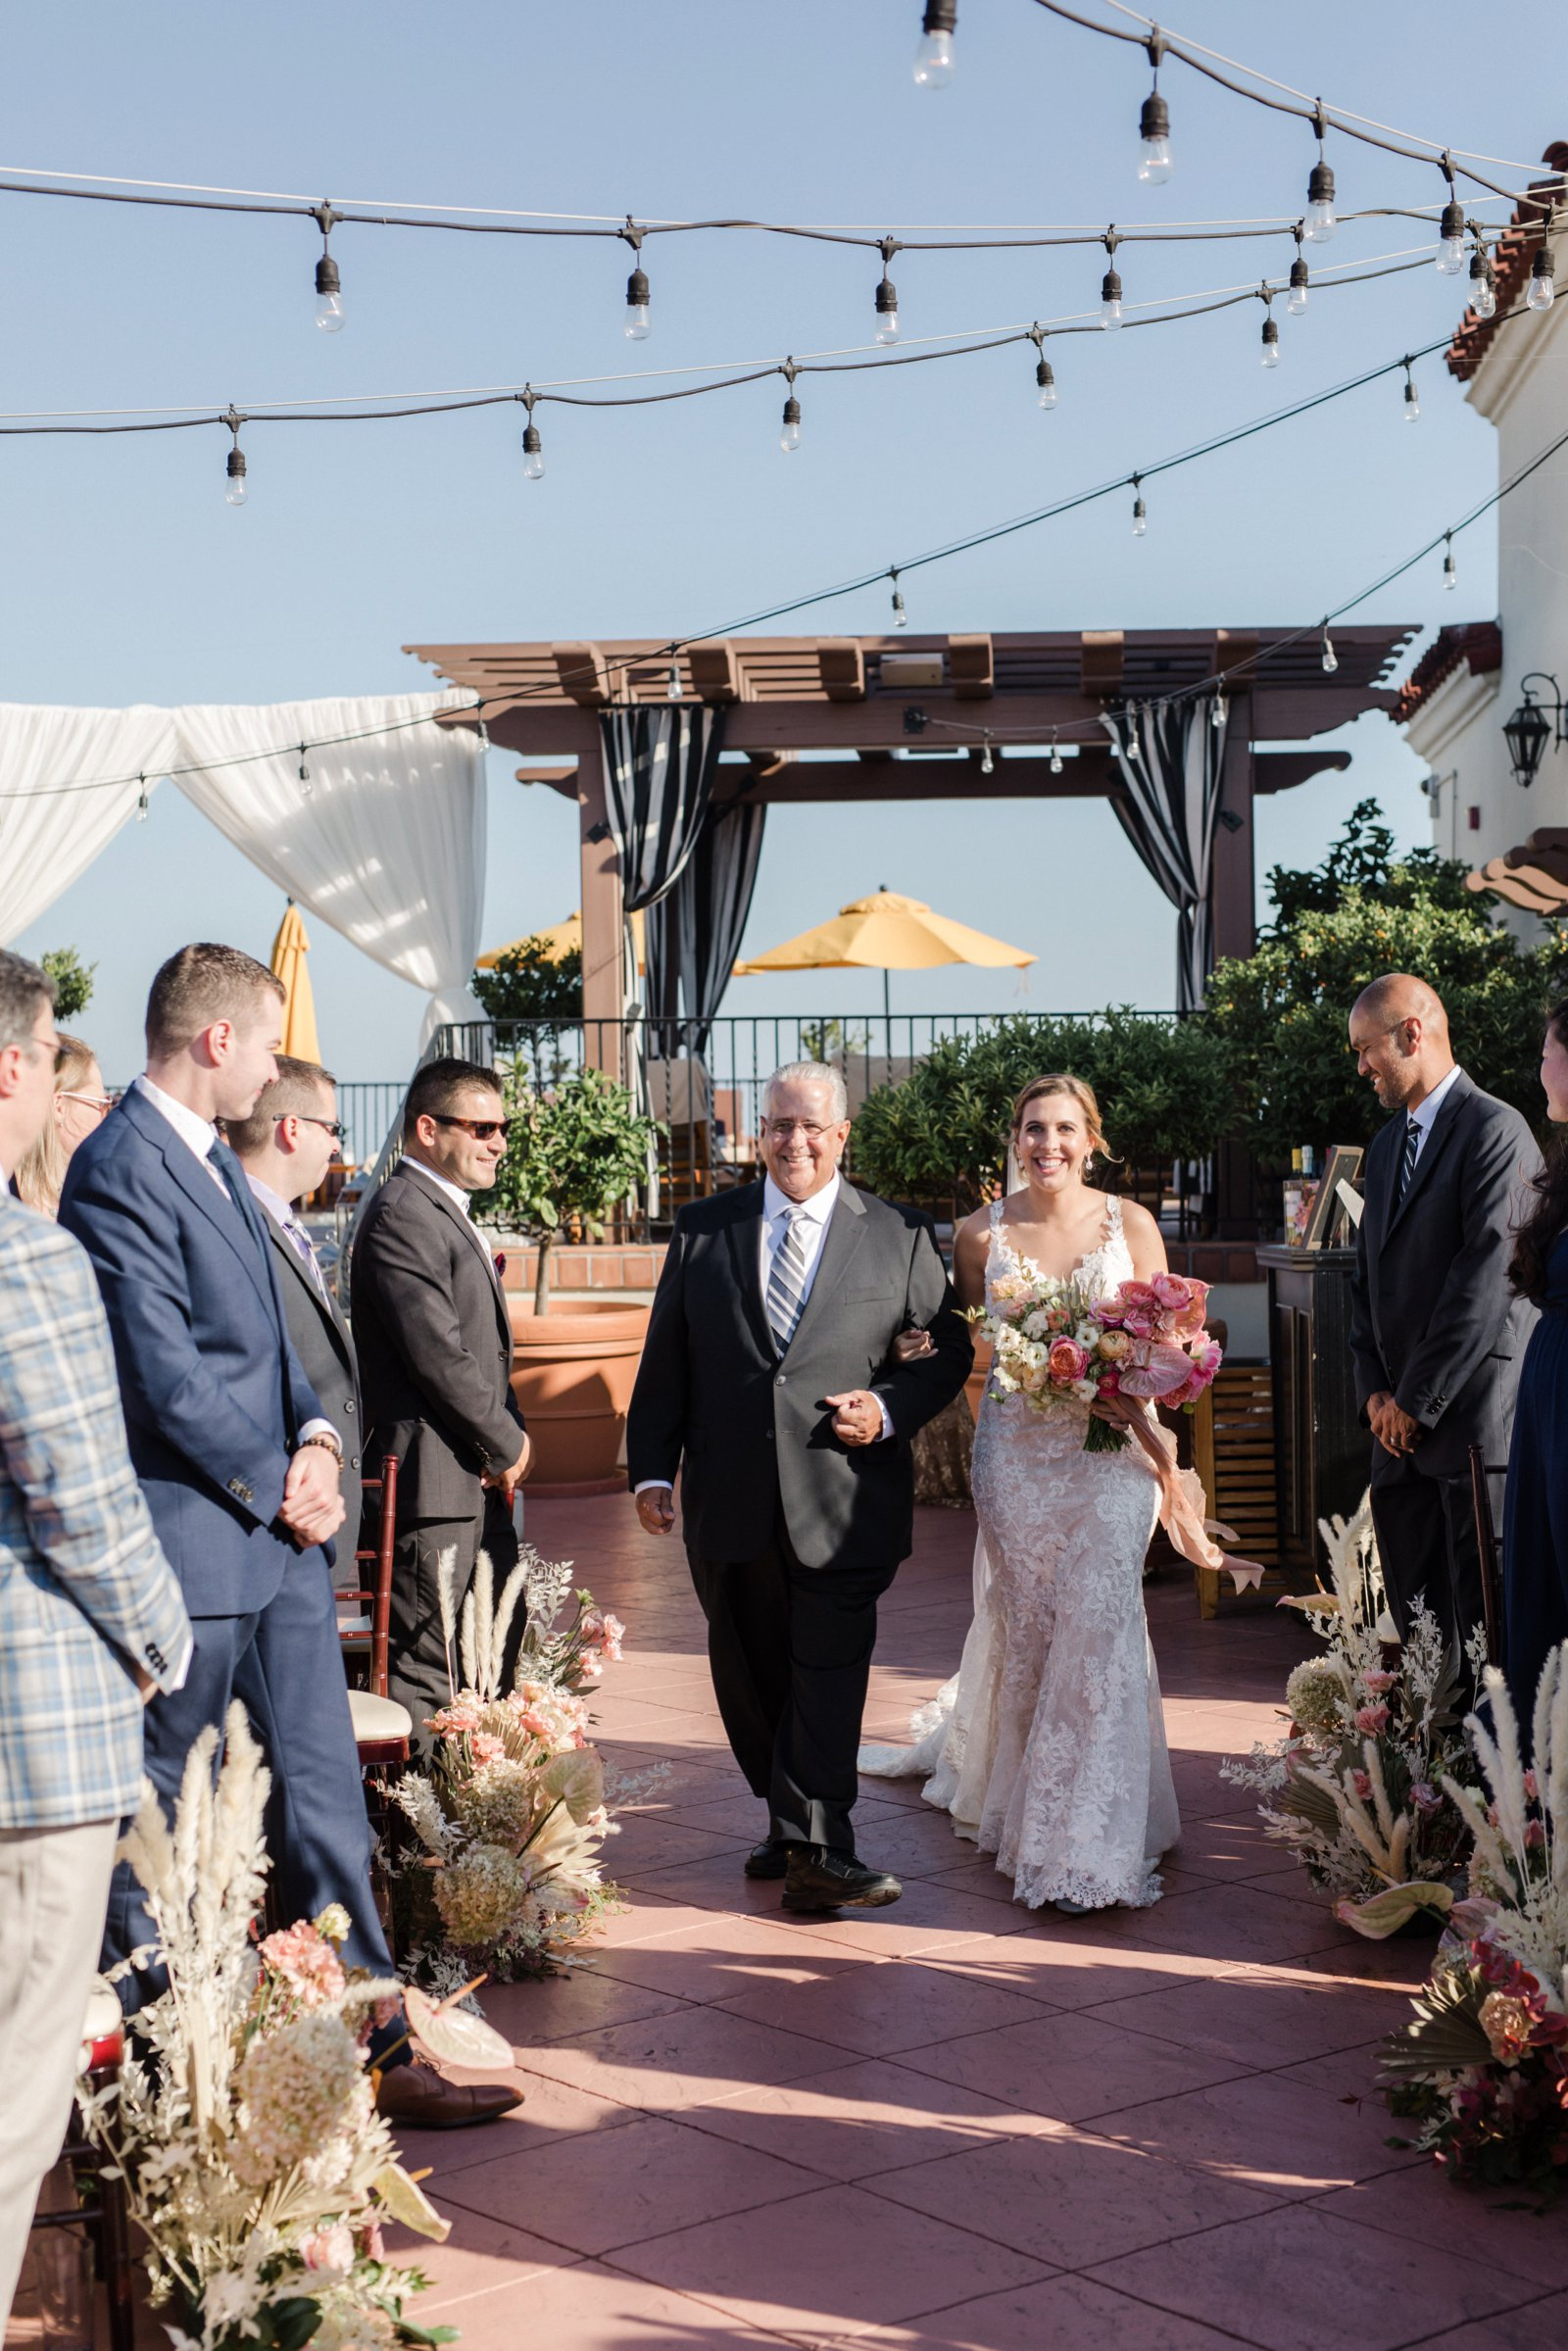 www.santabarbarawedding.com | Anna Delores Photography | Kimpton Canary Hotel | Onyx + Redwood | Bella Vista Designs | Father of the Bride Walks Her Down Aisle